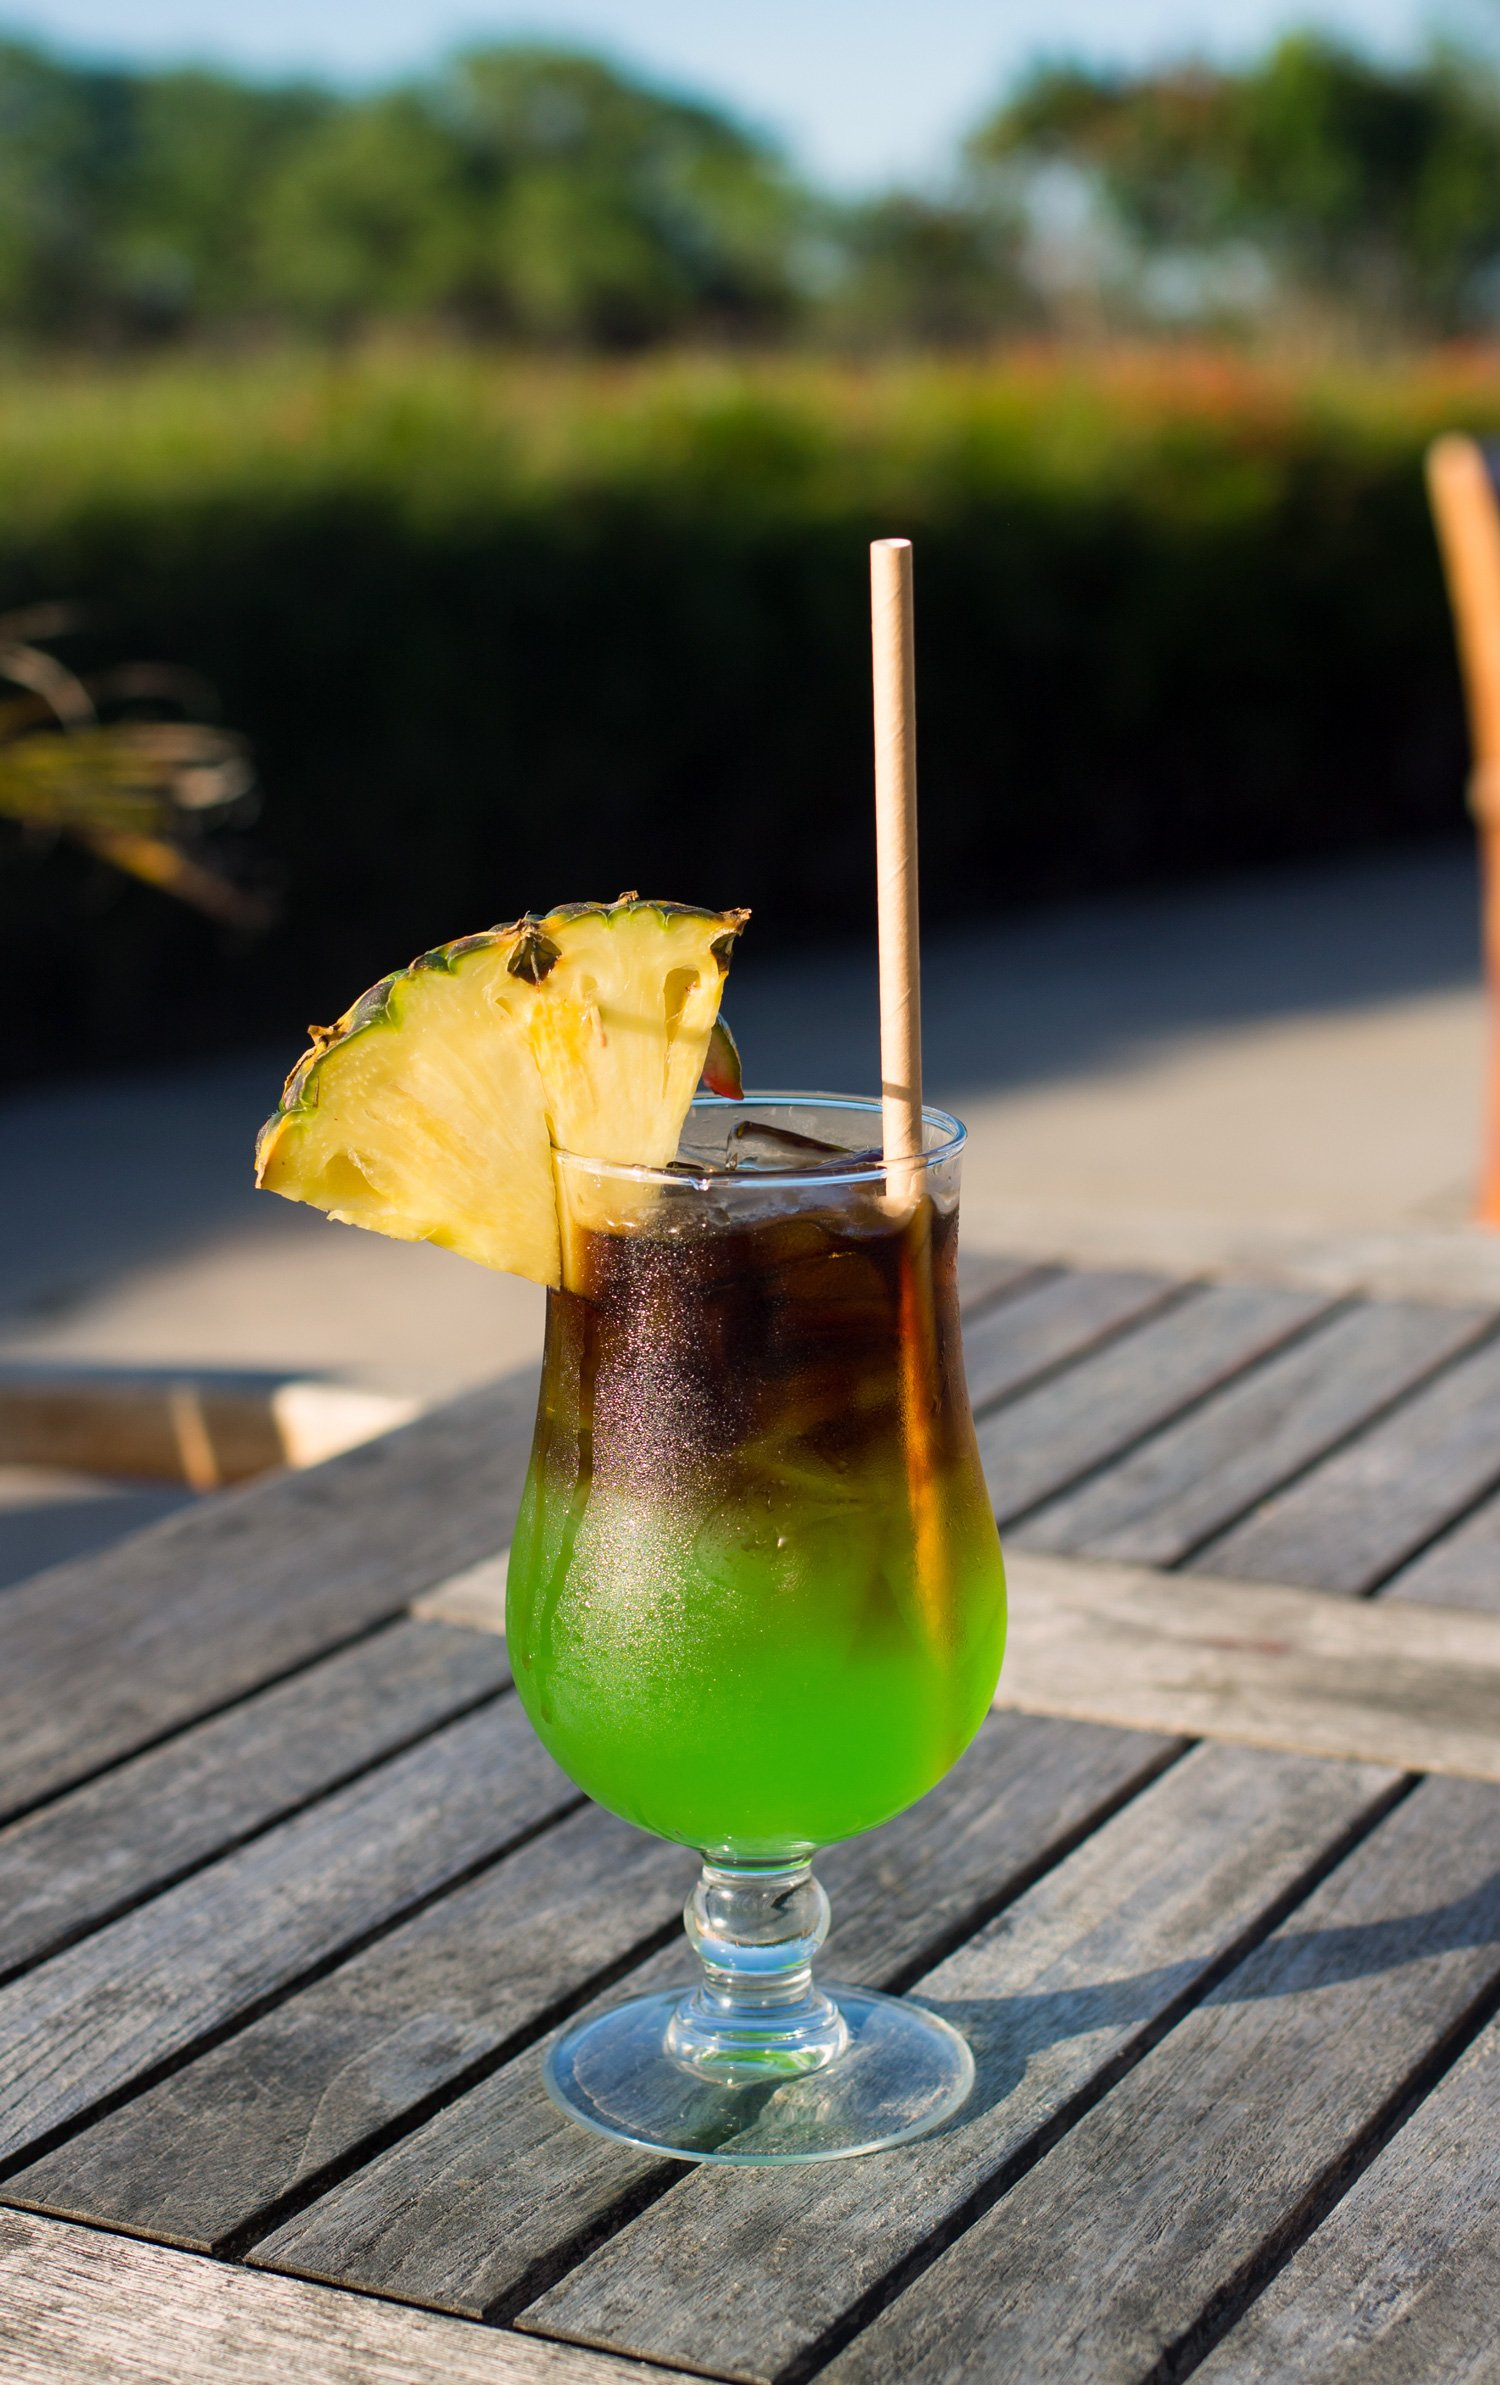 The Maui Wowie Cocktail